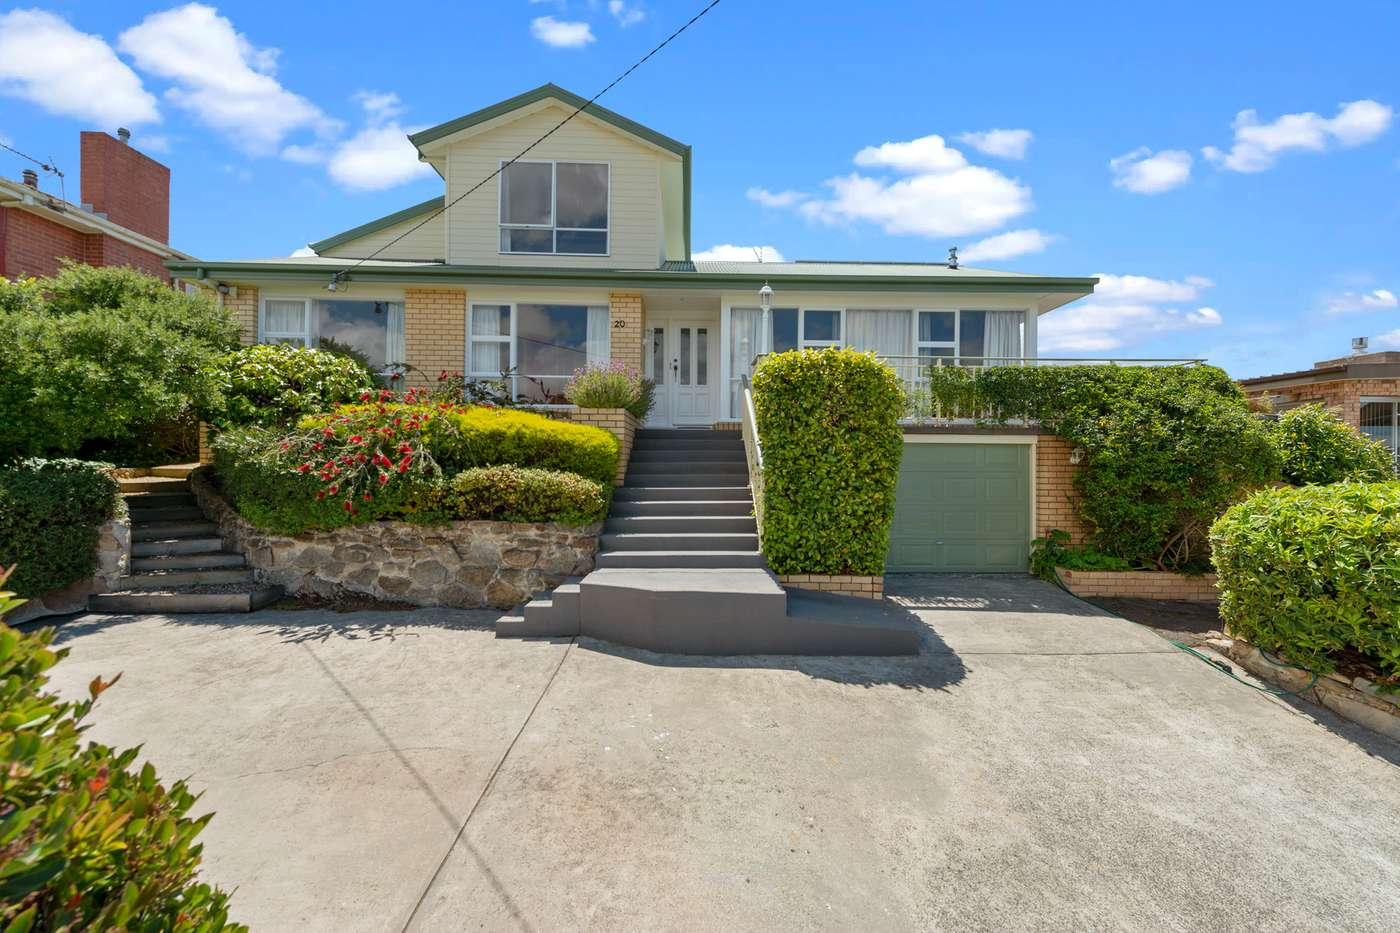 Main view of Homely house listing, 20 Cleburne Street, Claremont, TAS 7011